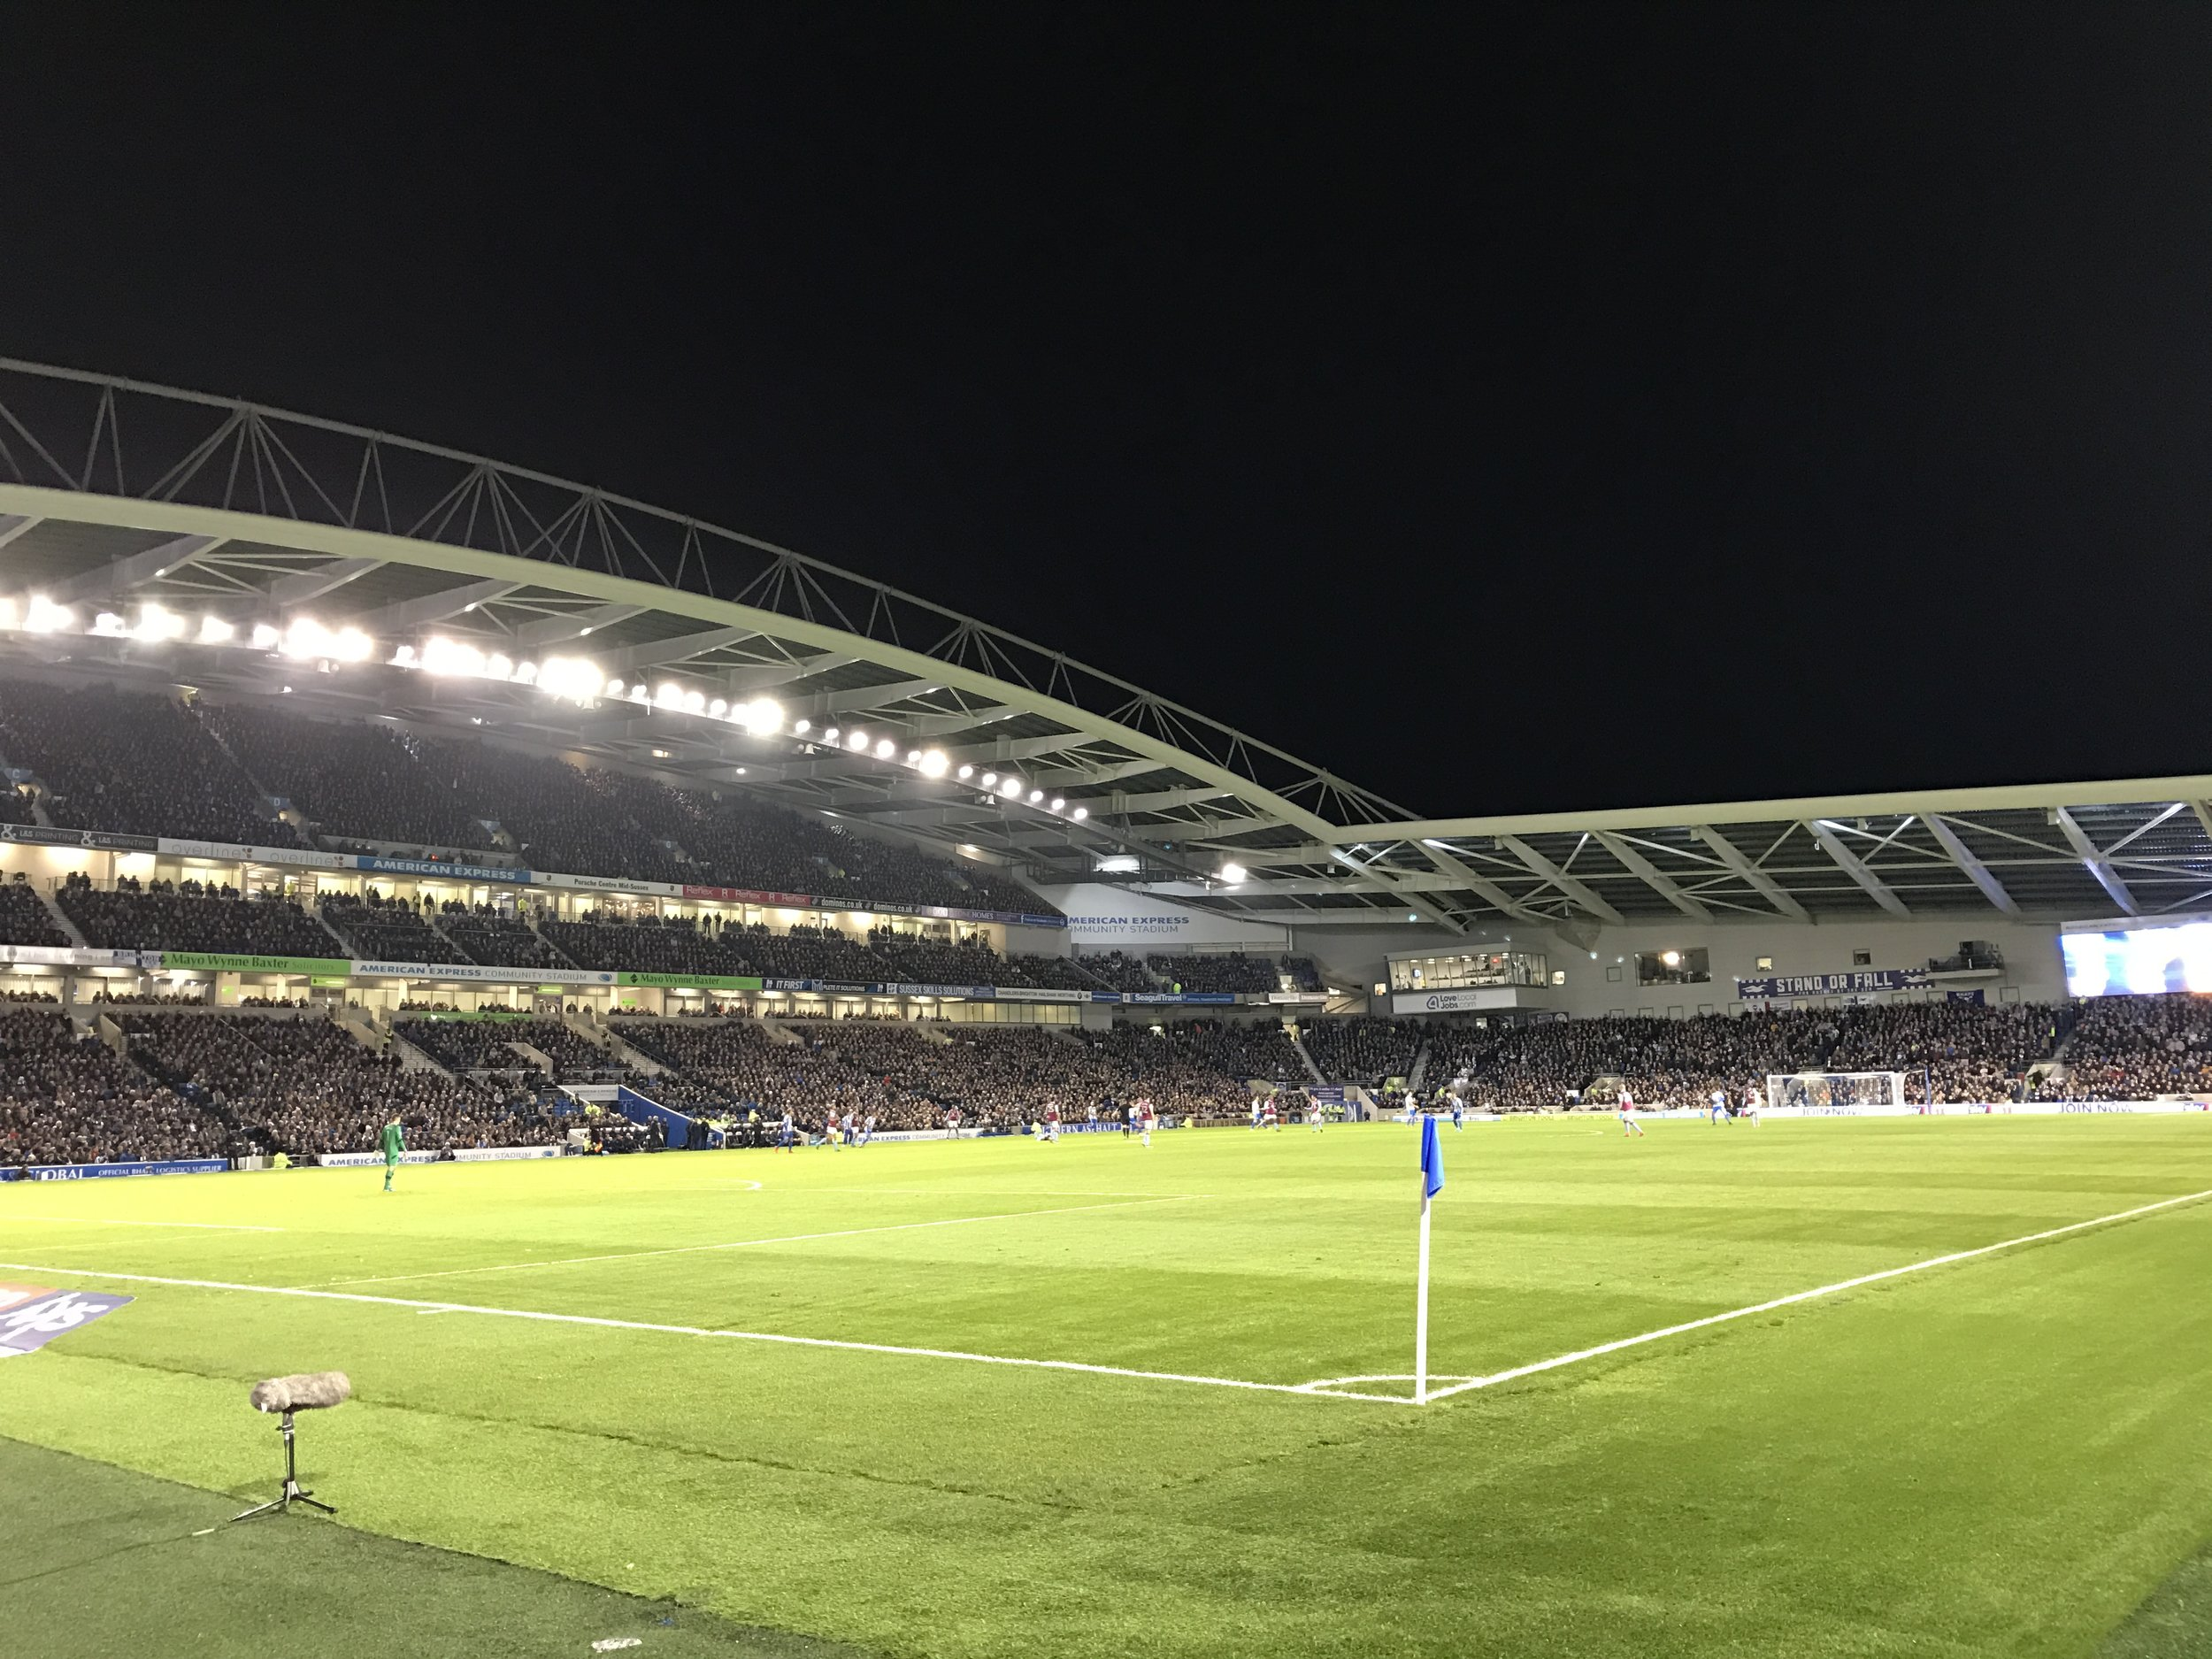 Brighton vs Aston Villa at The Amex Stadium.